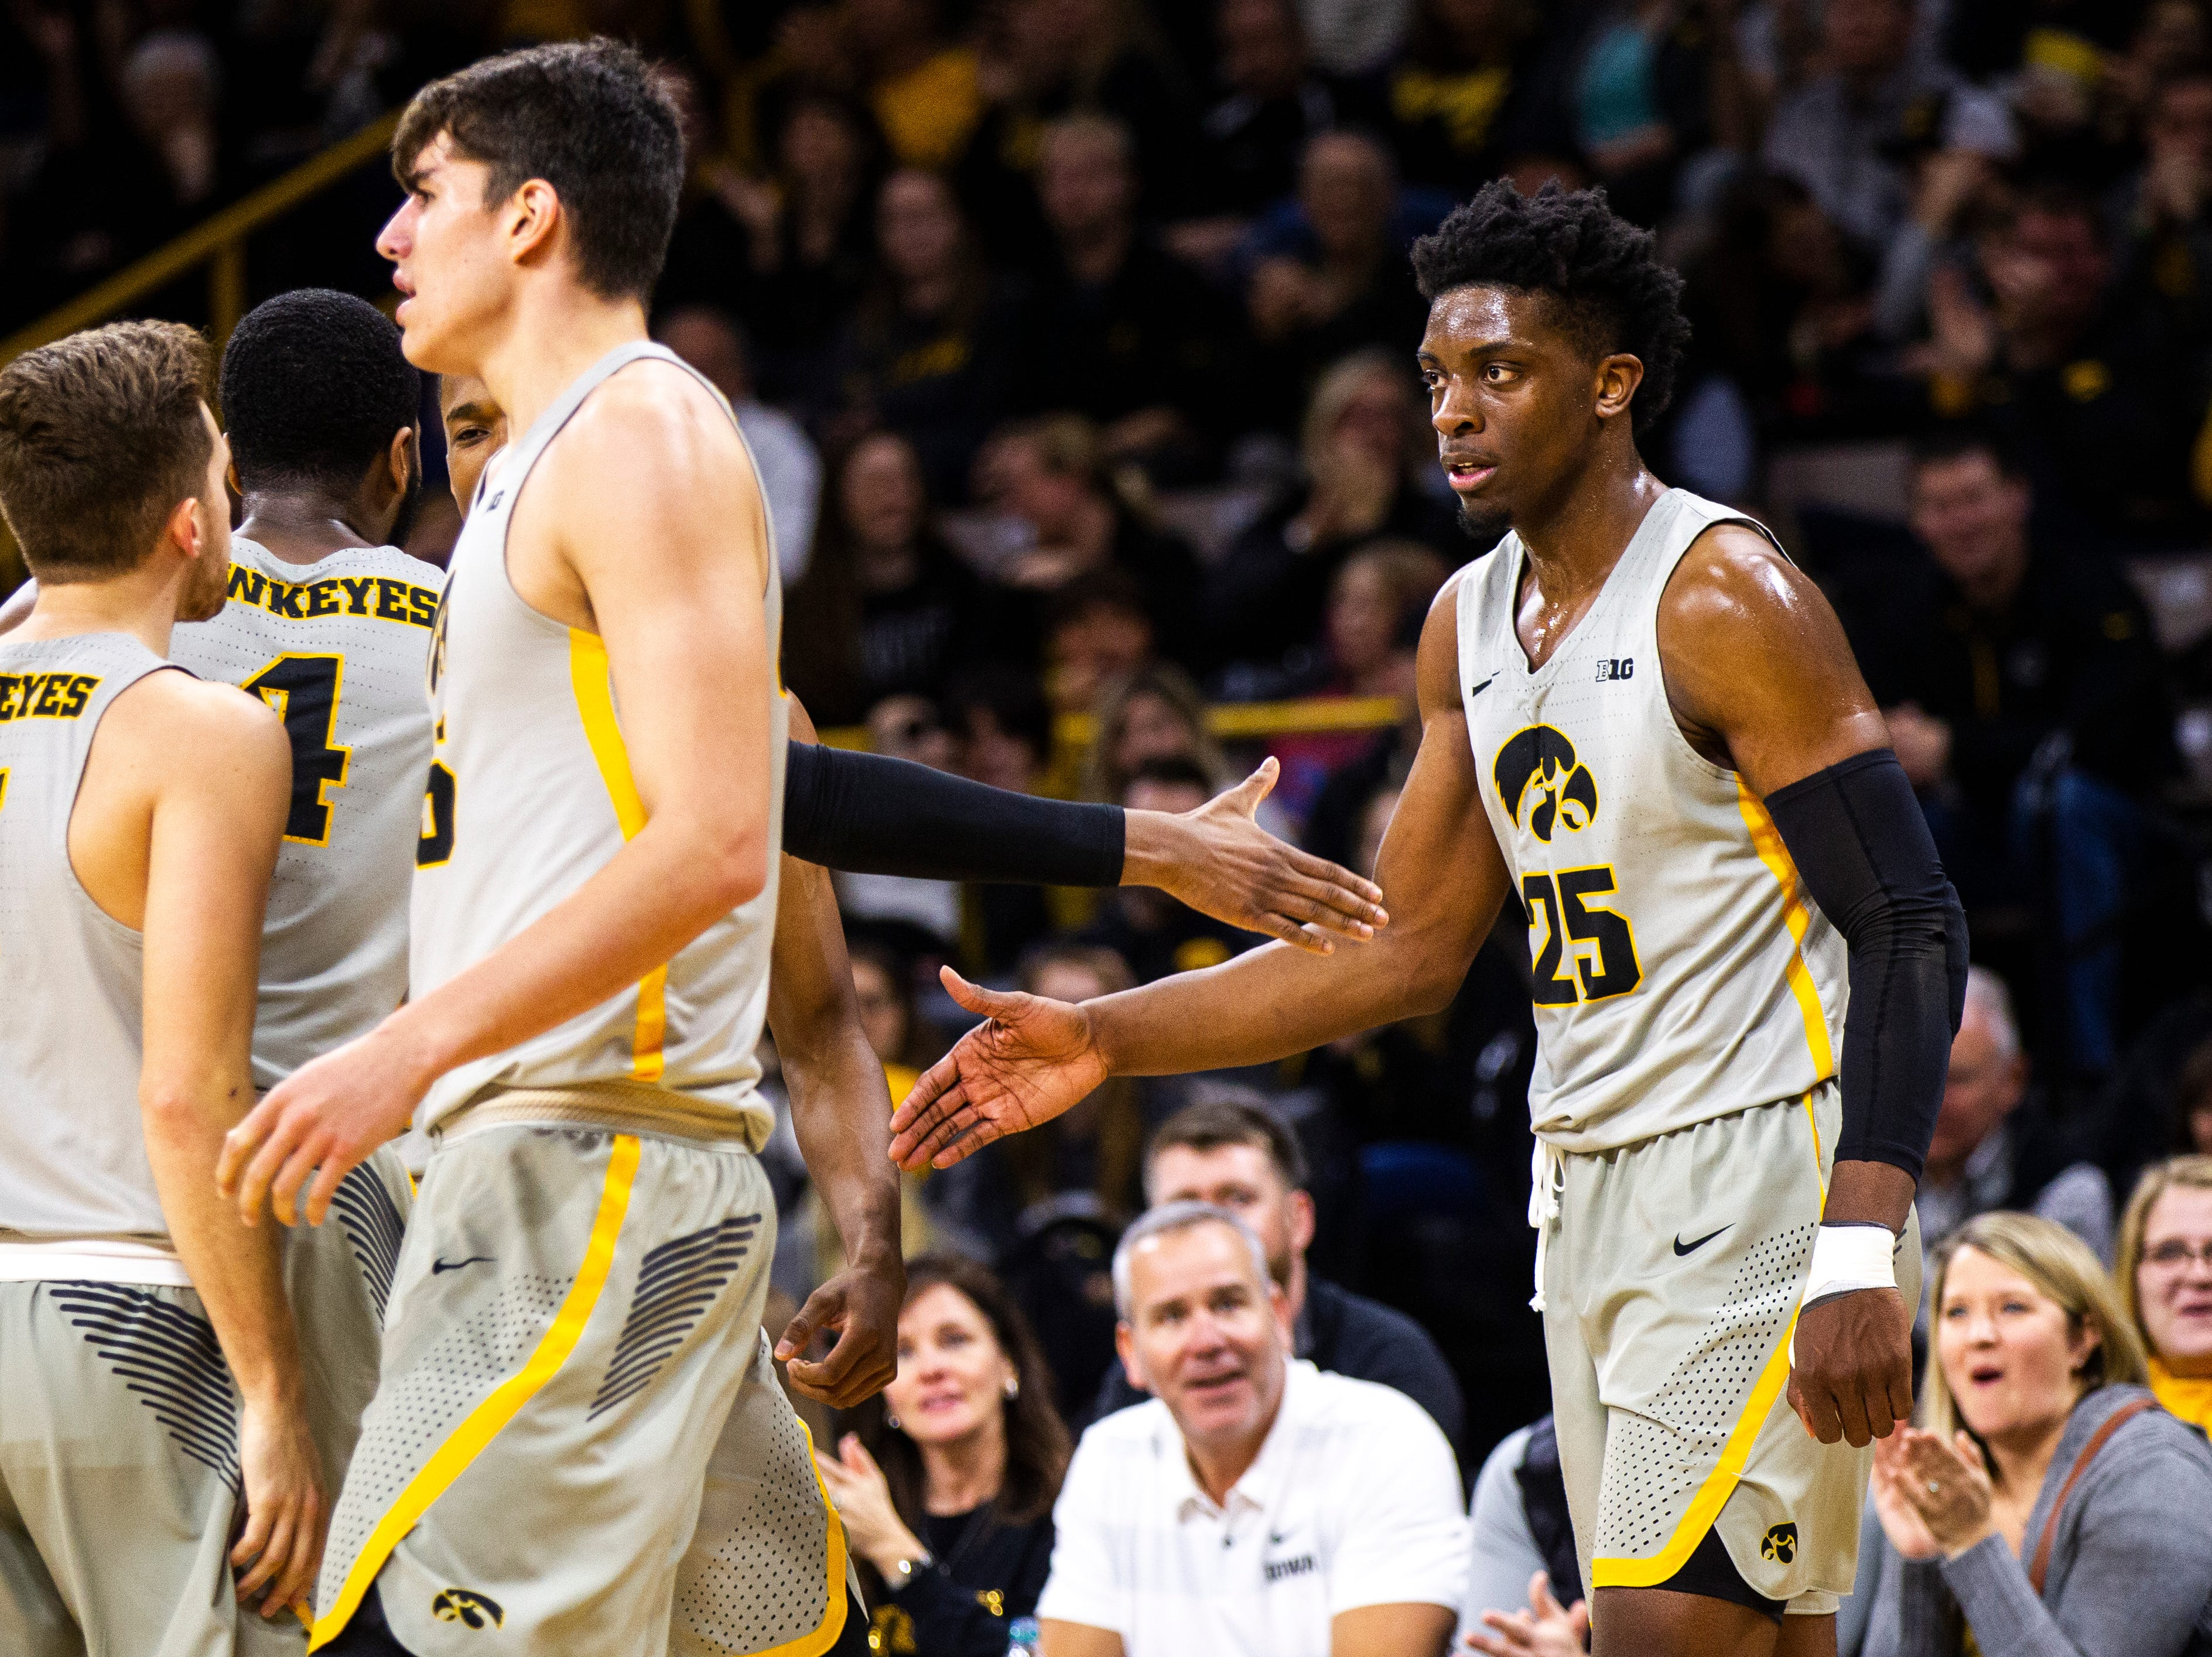 Iowa forward Tyler Cook (25) gets a high-five from Iowa guard Isaiah Moss (4) after drawing a foul during a NCAA Big Ten Conference men's basketball game on Sunday, Jan. 6, 2019, at the Carver-Hawkeye Arena in Iowa City, Iowa.